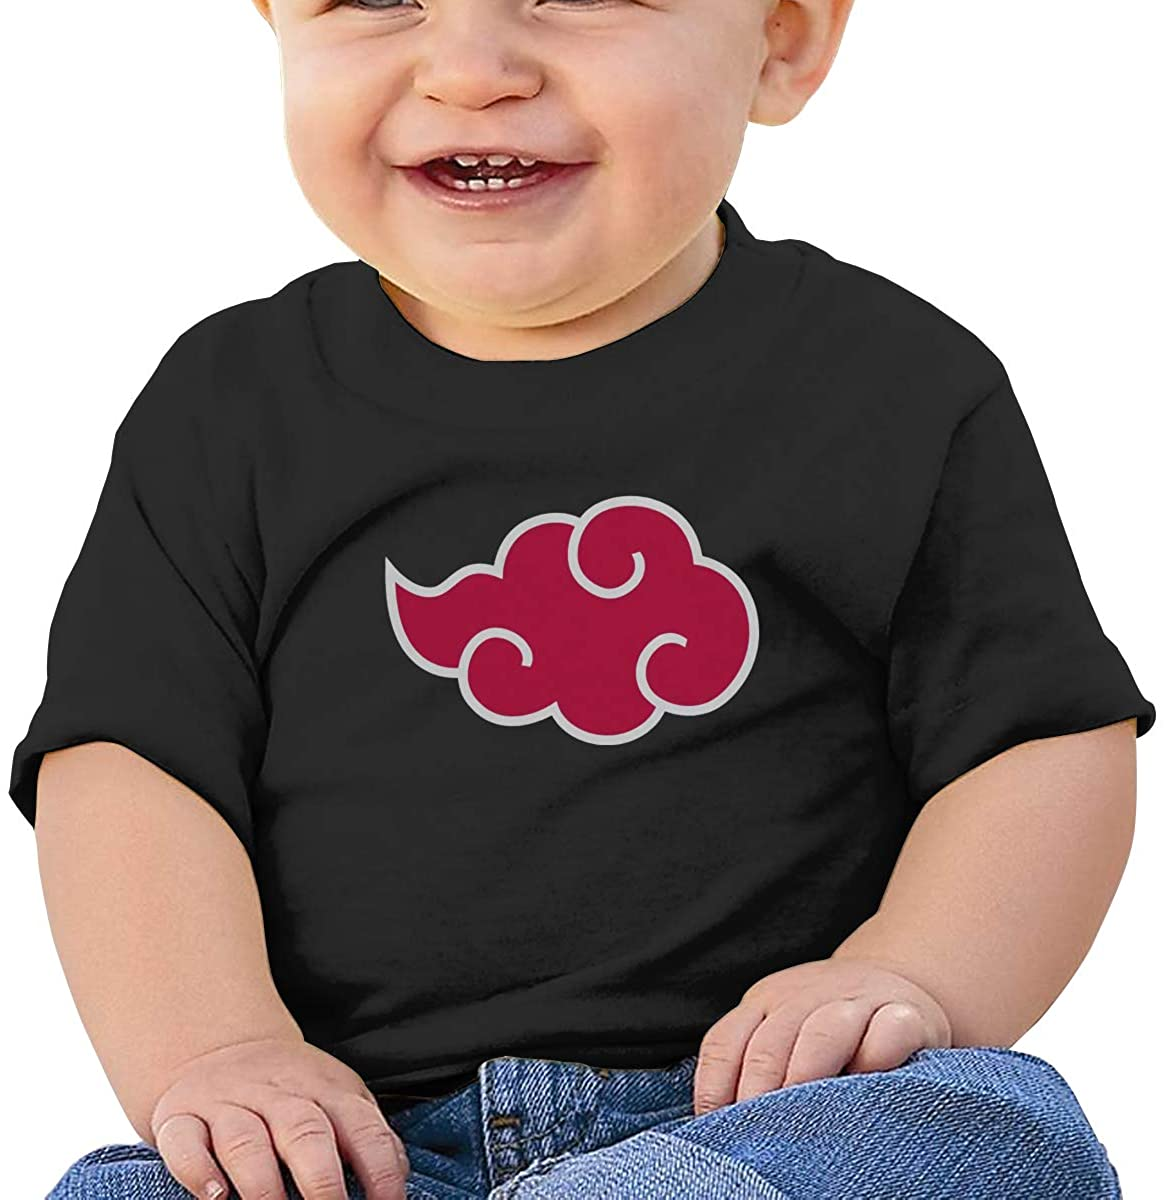 Andea Naruto Soft and Comfortable Cotton Baby Short-Sleeved T-Shirt